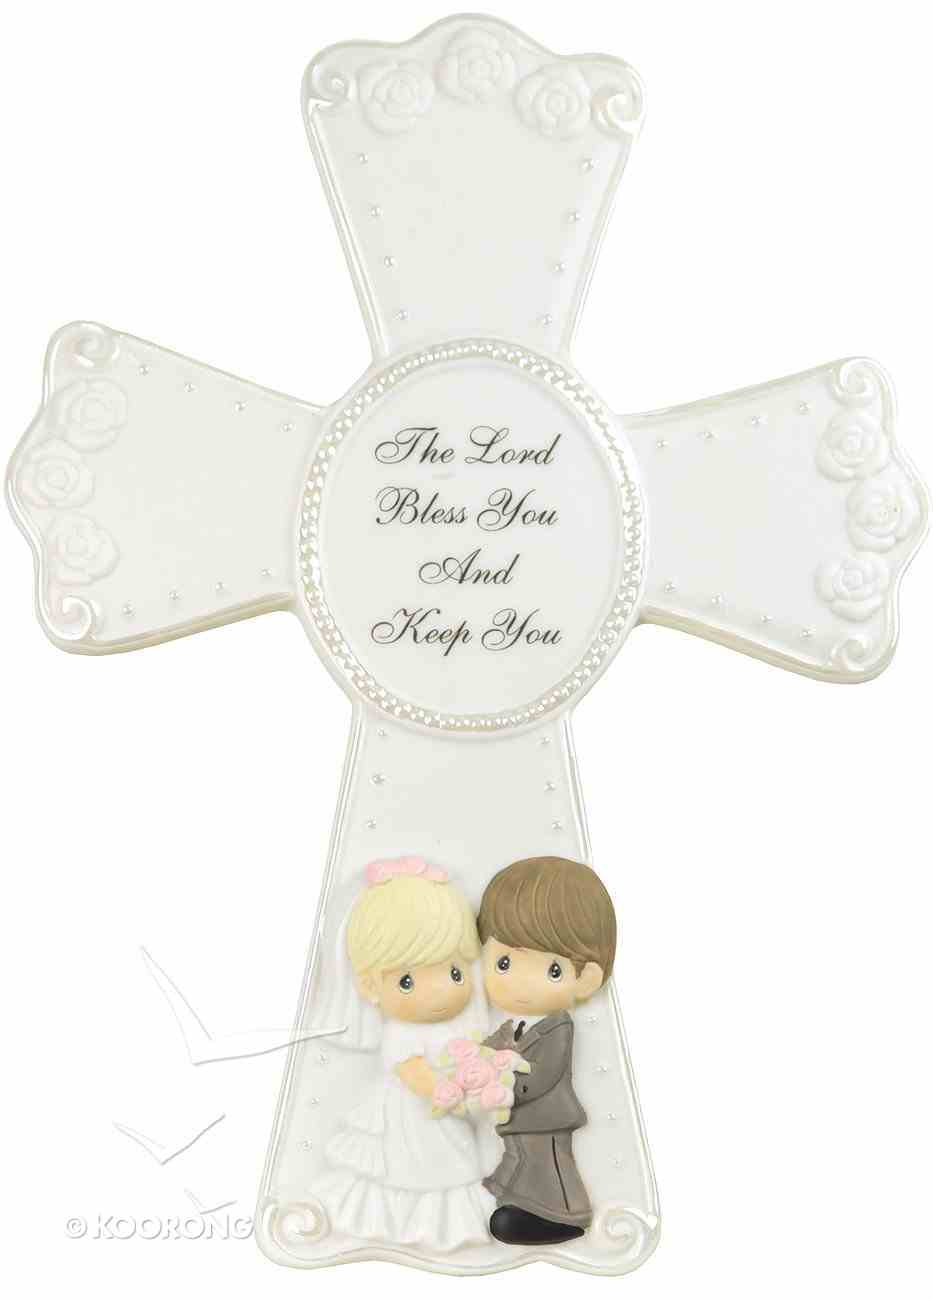 Precious Moments Wedding Cross: The Lord Bless You and Keep You Homeware